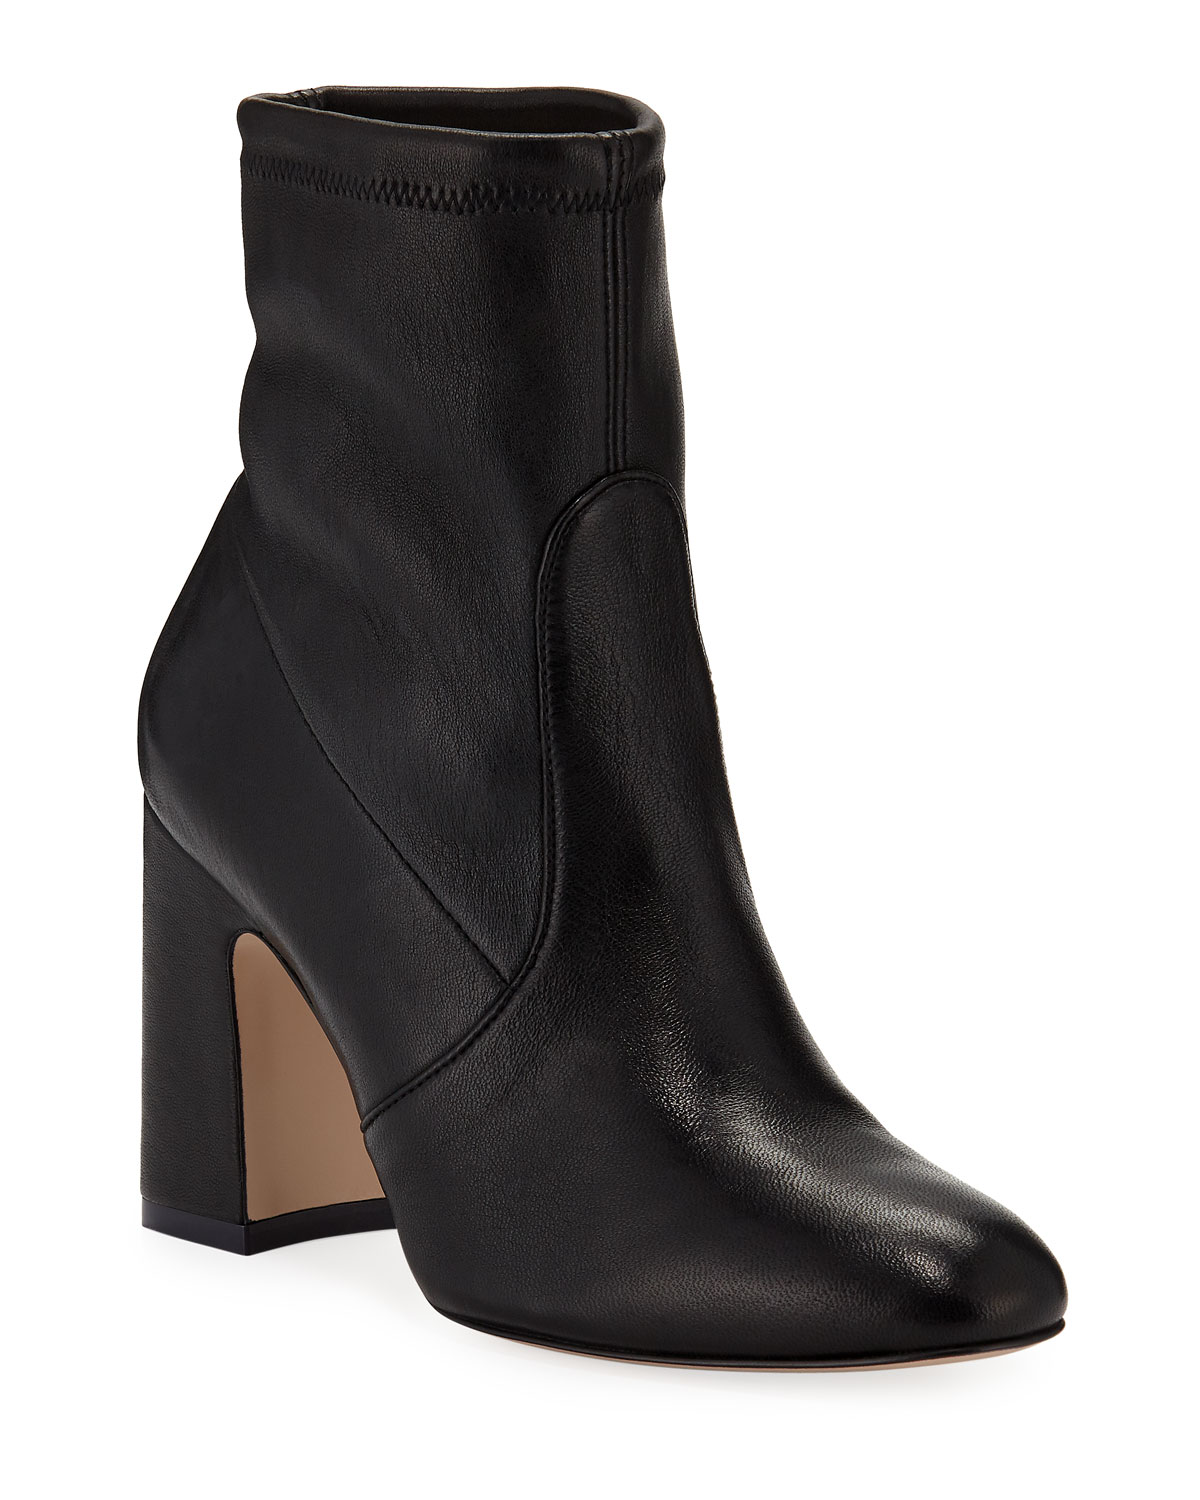 Niki Stretch-Leather Booties, Black